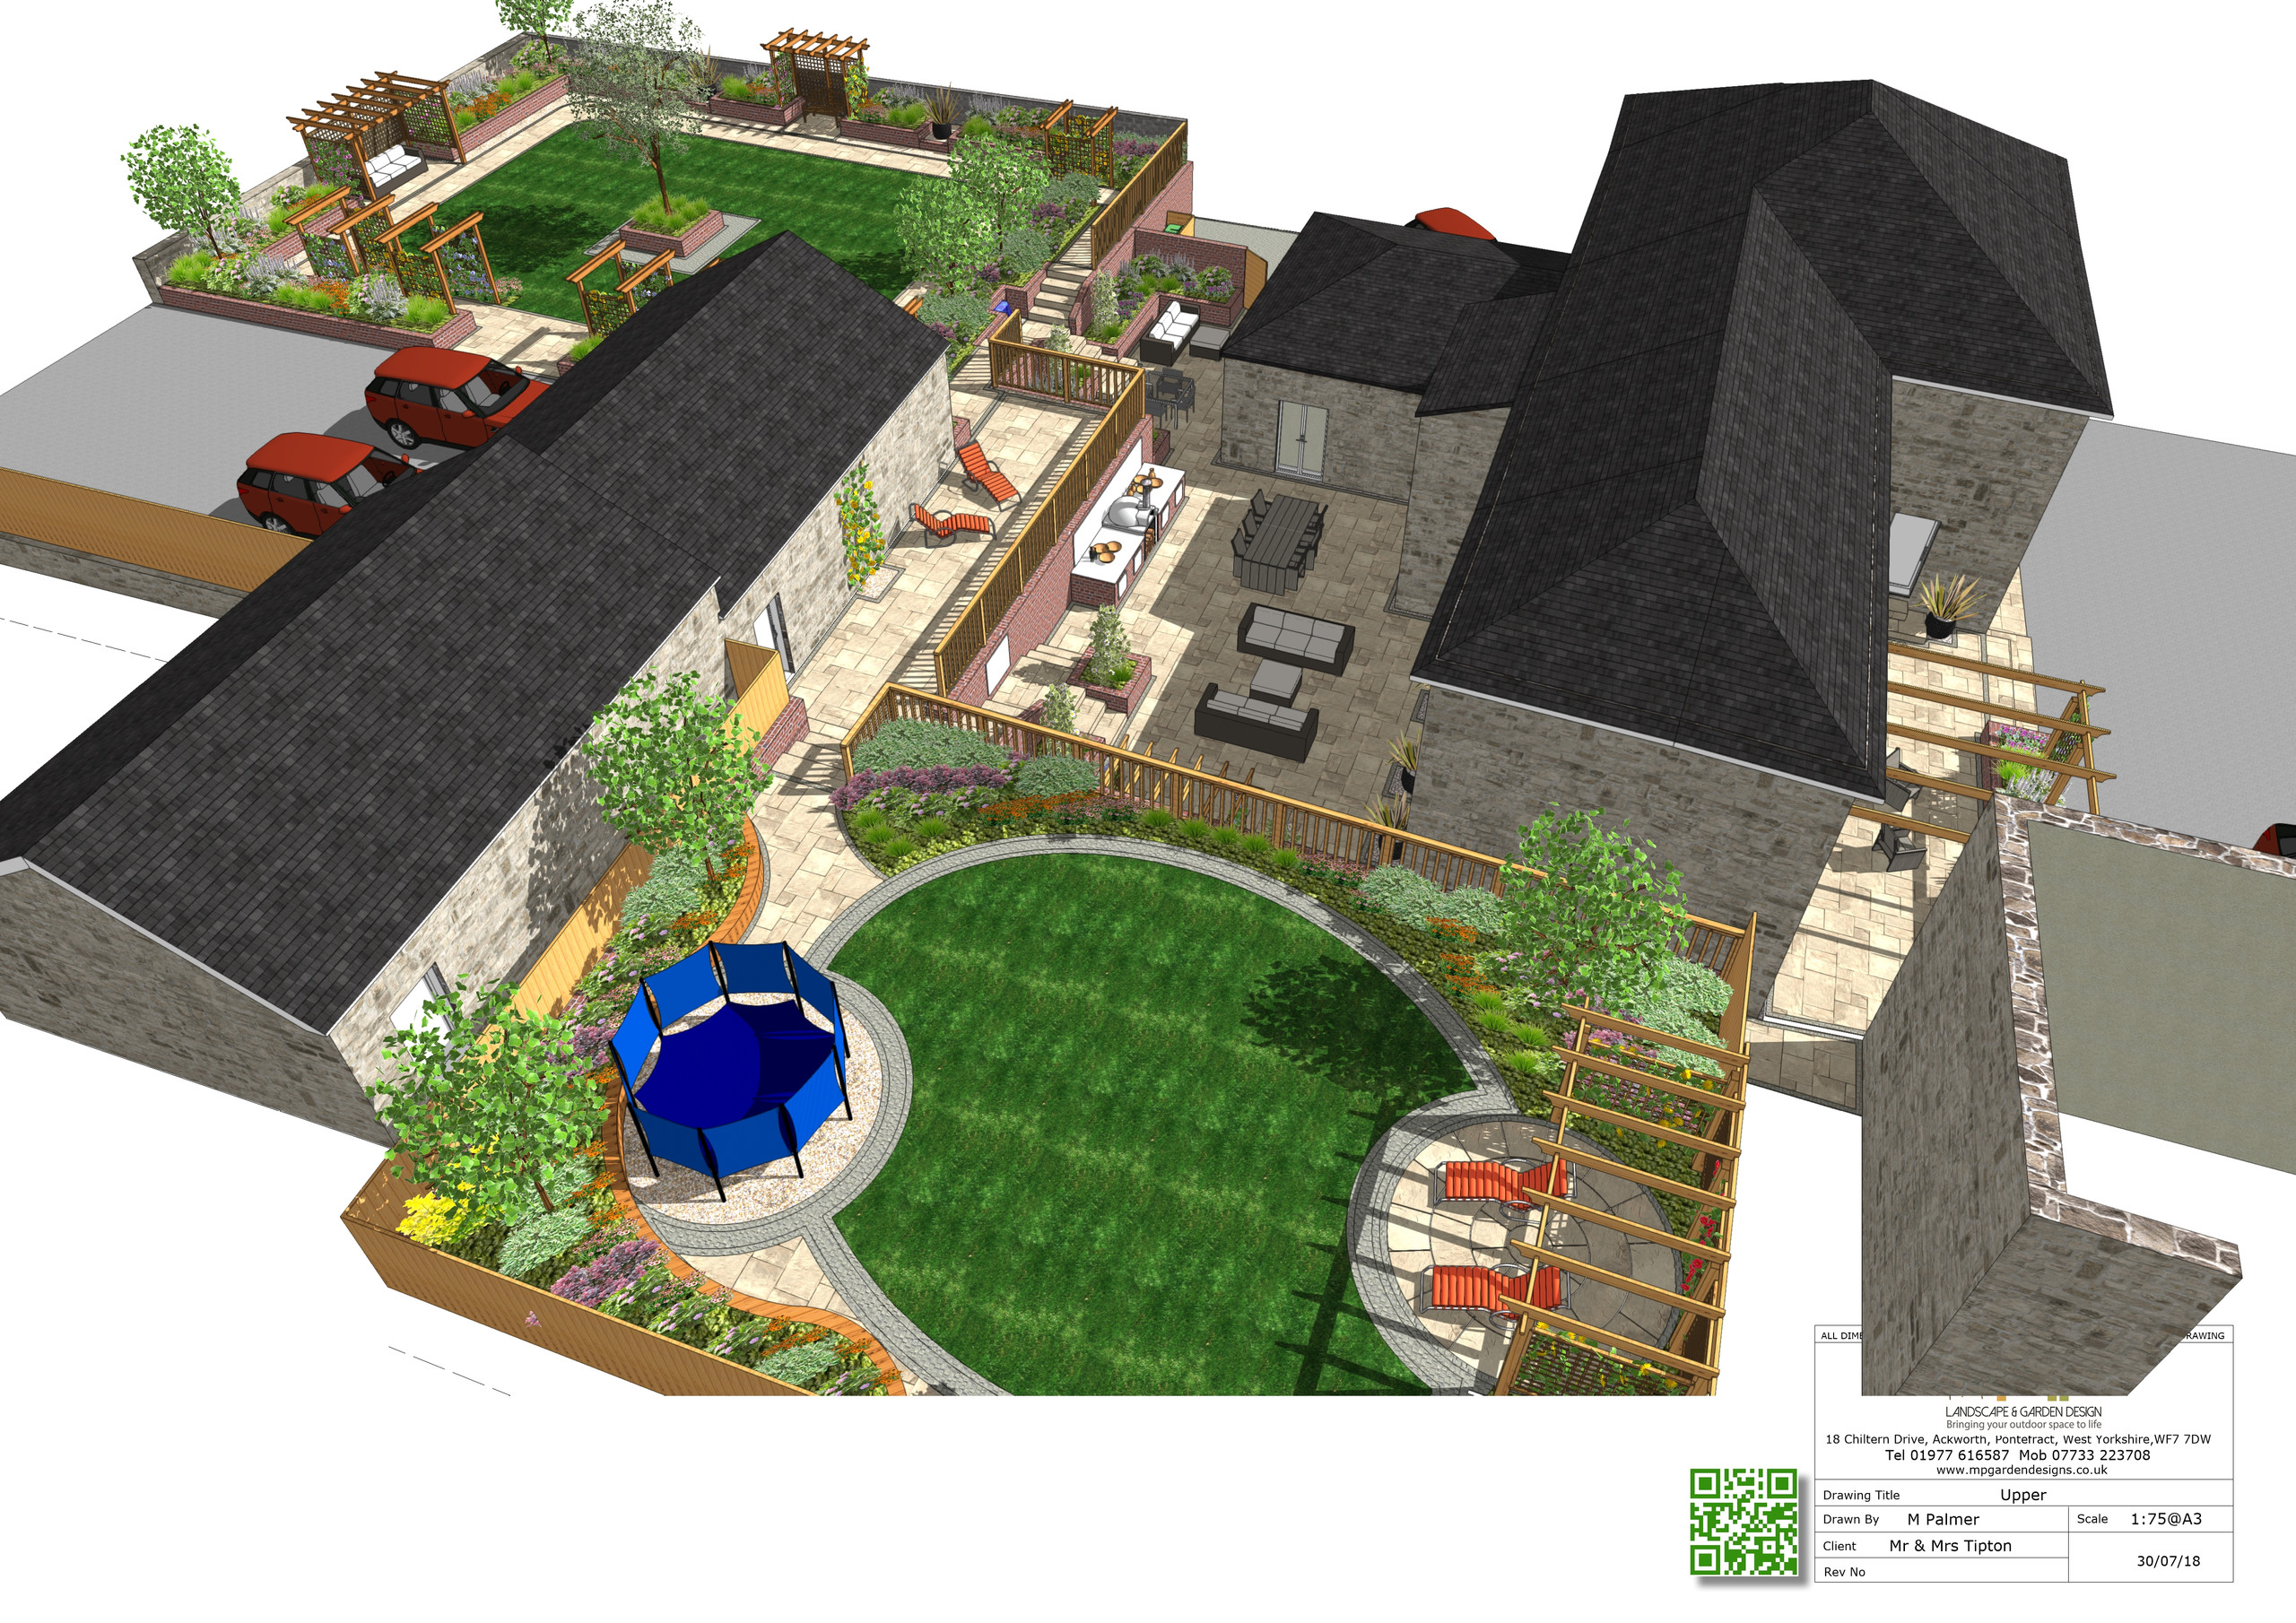 4, 3D views of a landscape design for a barn conversion in Castleford, West Yorkshire.